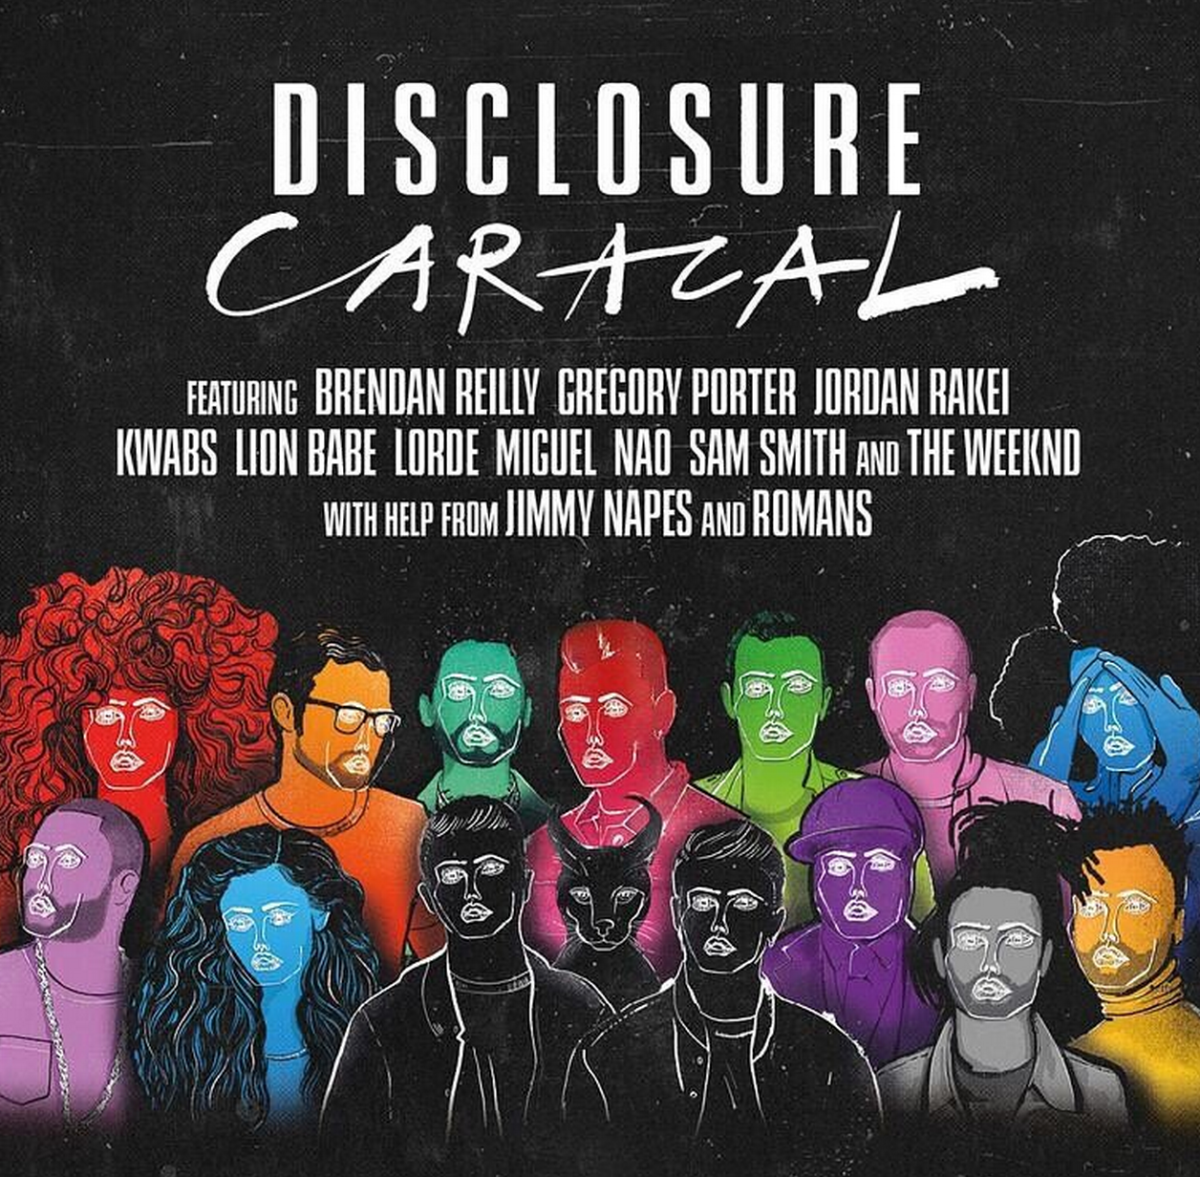 disclosure caracal album